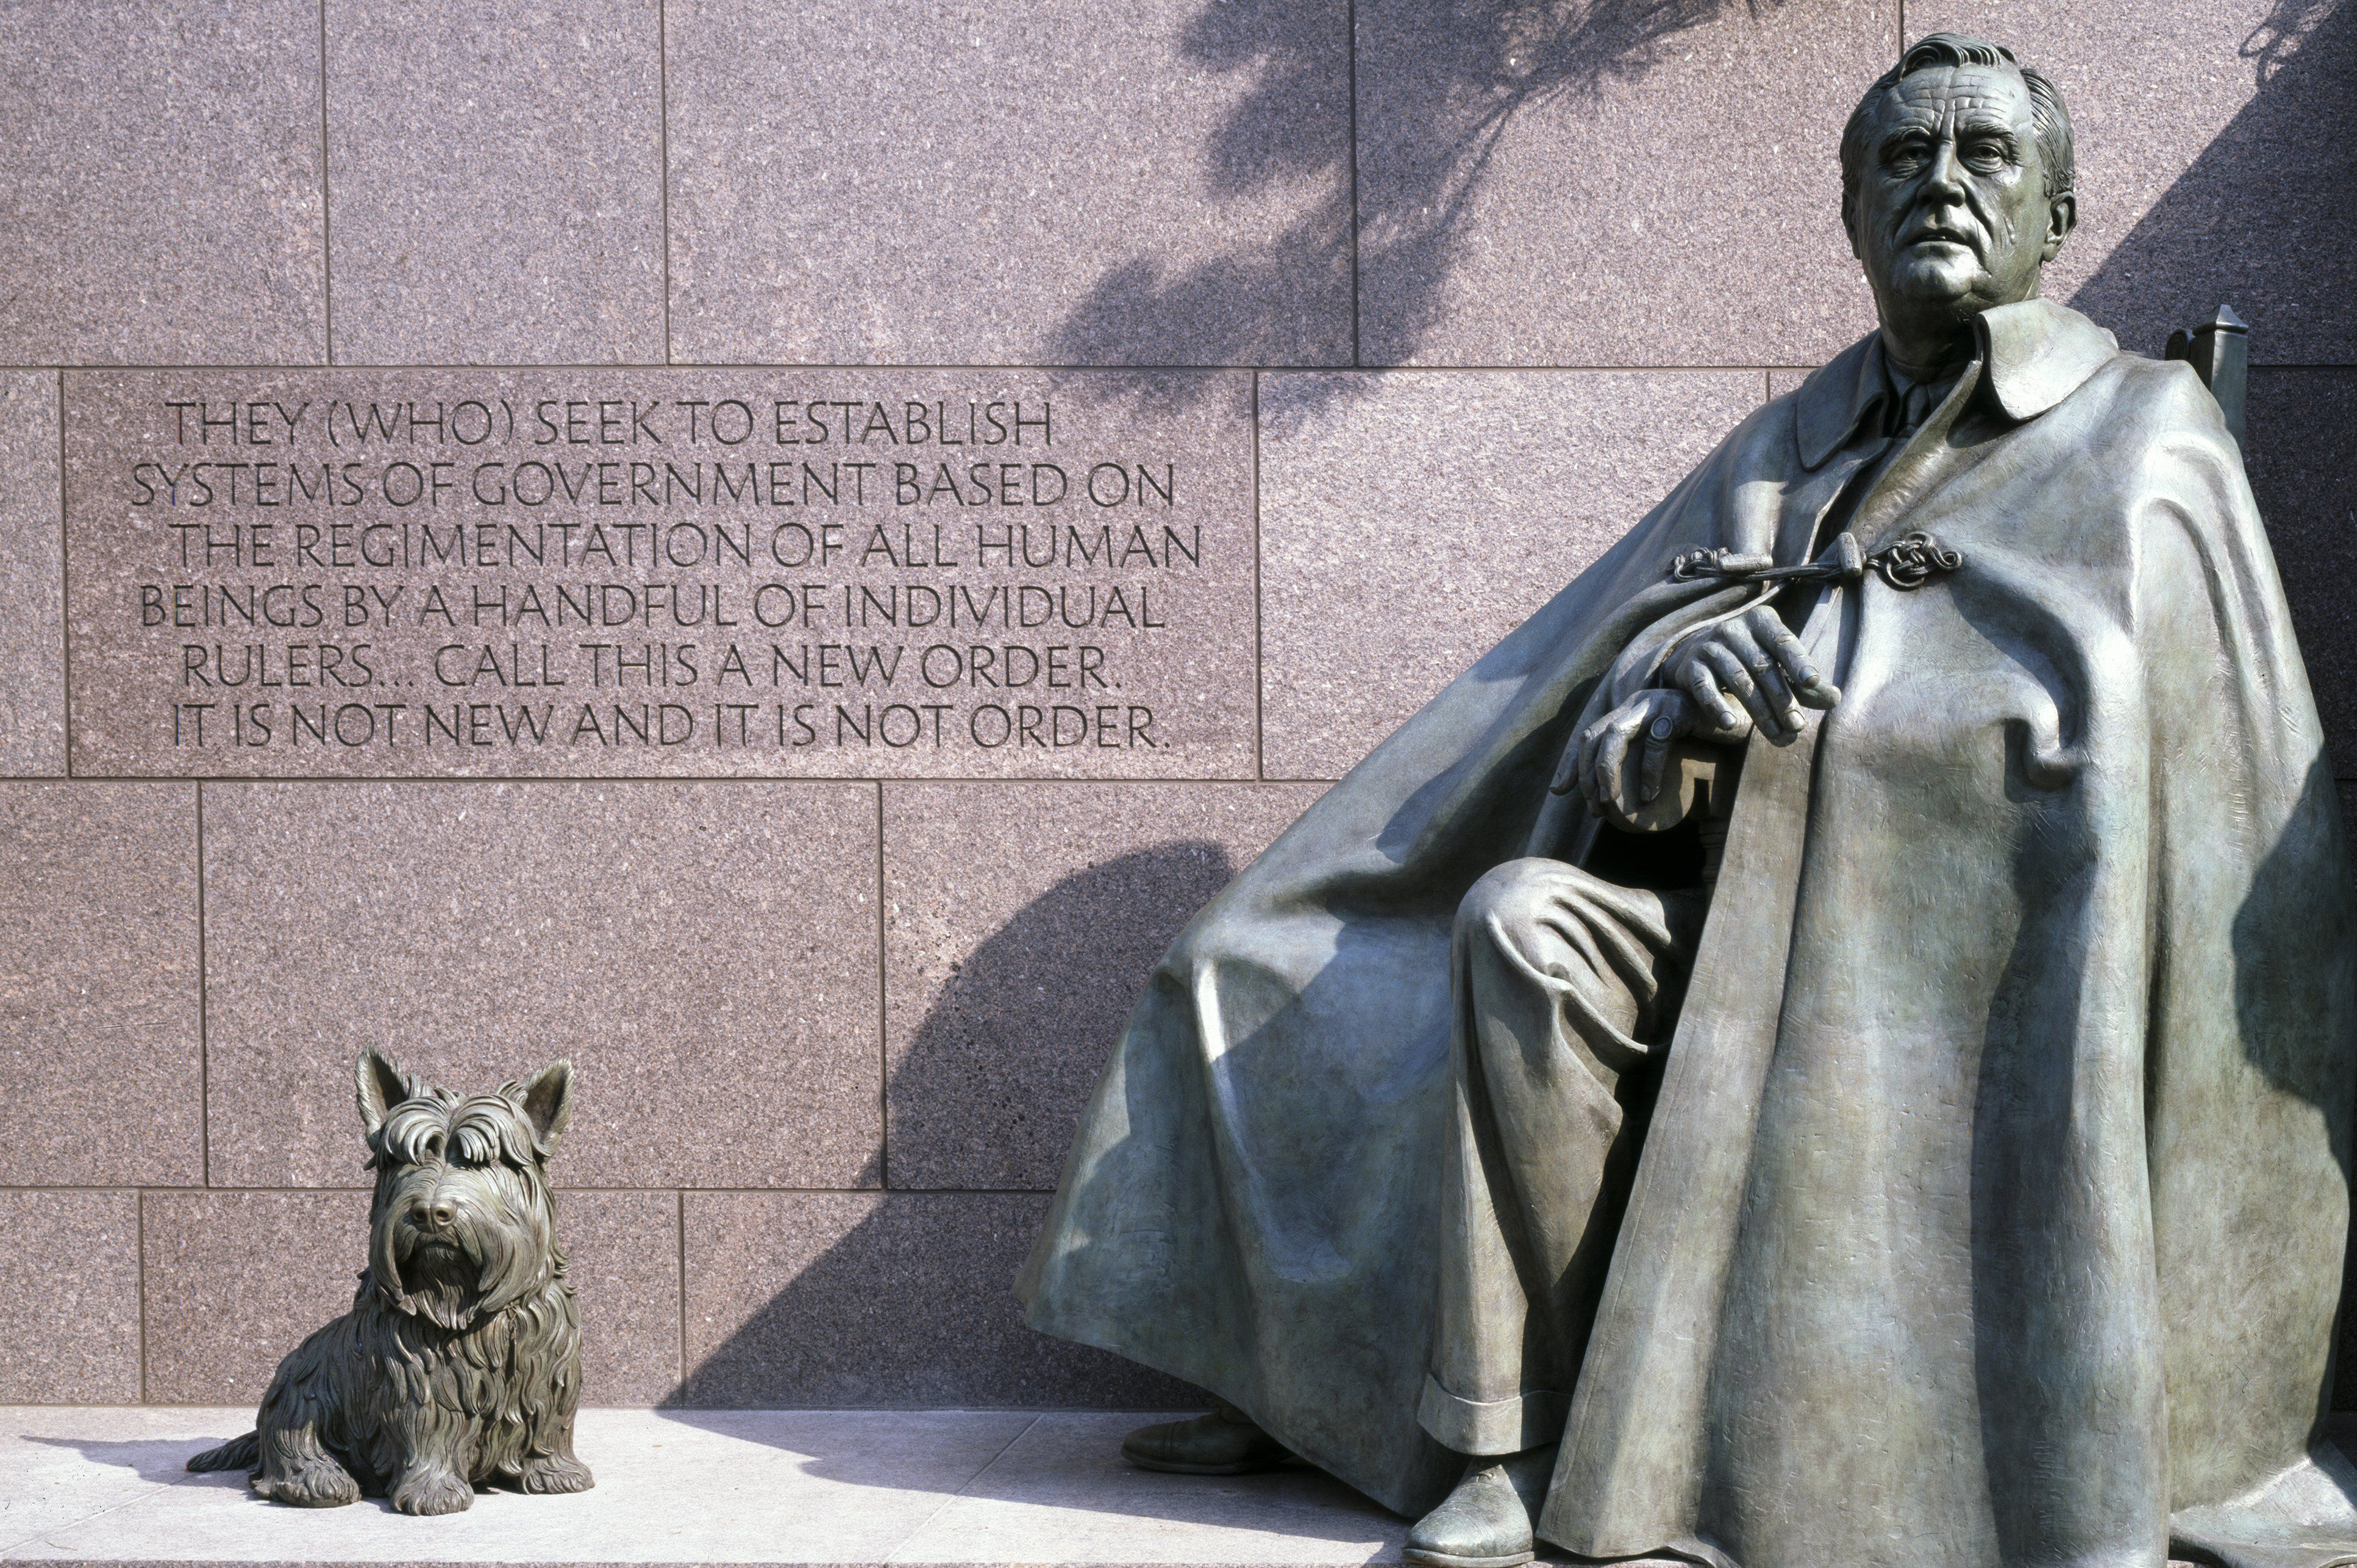 Franklin D Roosevelt Quotes Visting The Fdr Memorial In Washington D.c.